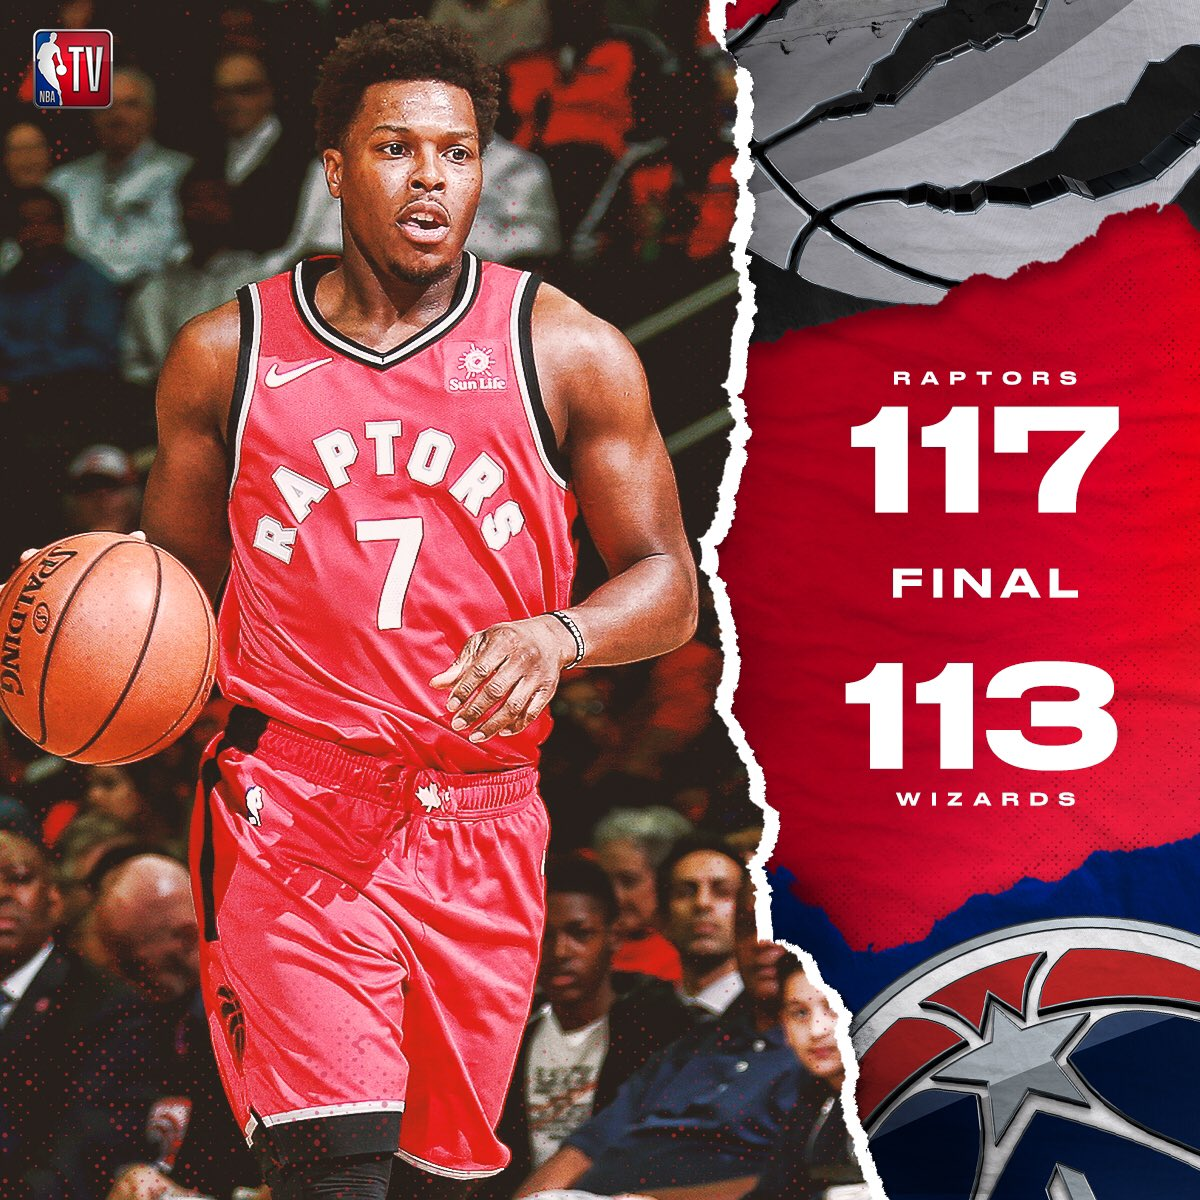 The @Raptors remain undefeated as they survive in DC!  #WeTheNorth